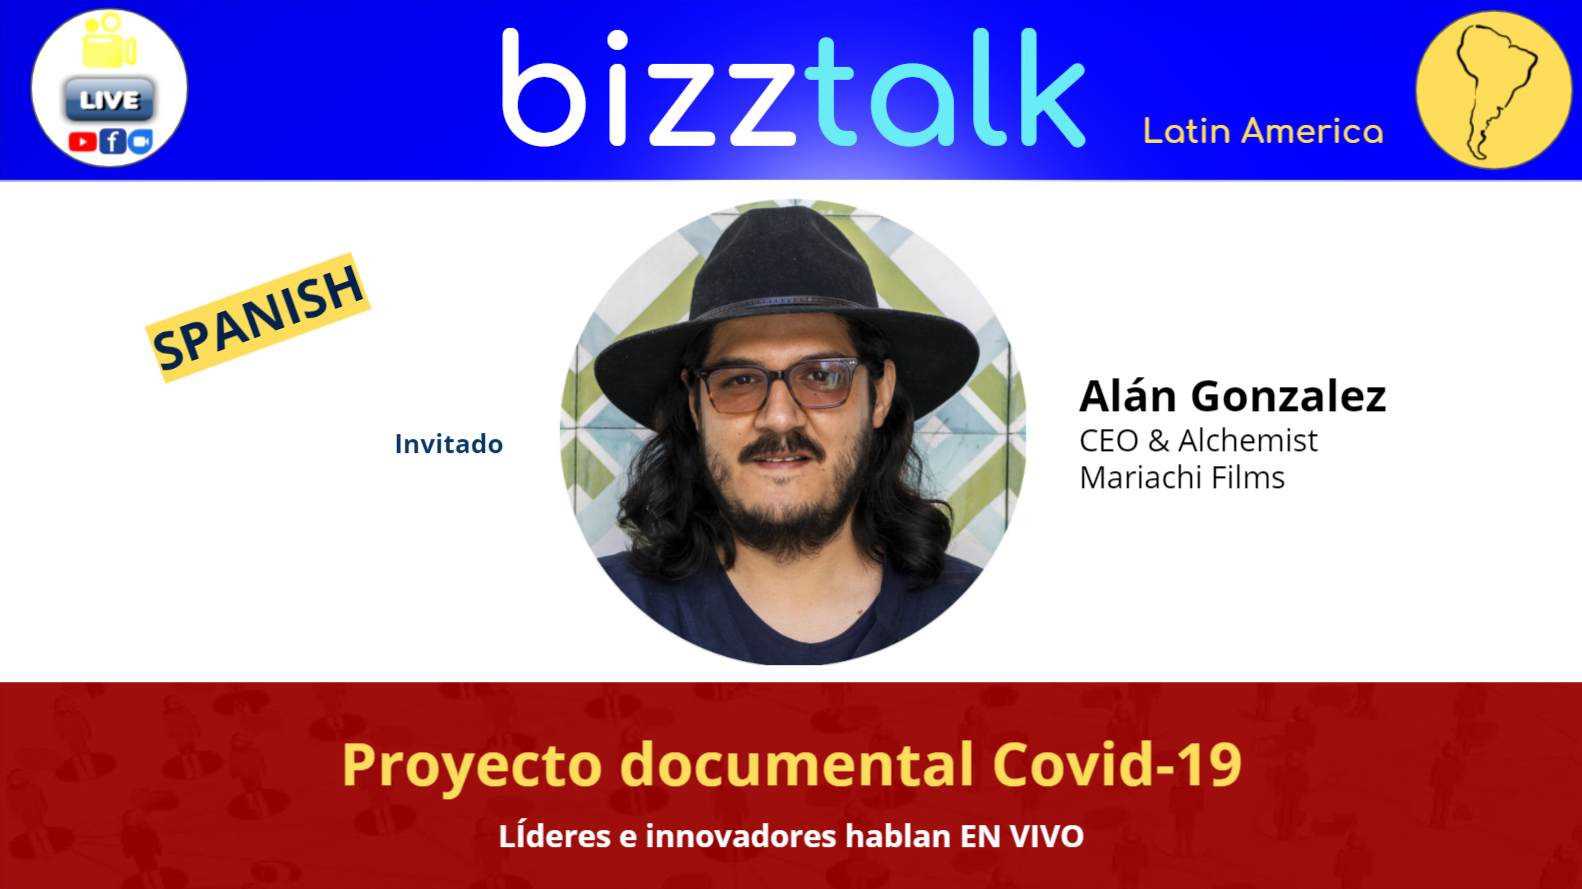 Proyecto documental Covid-19